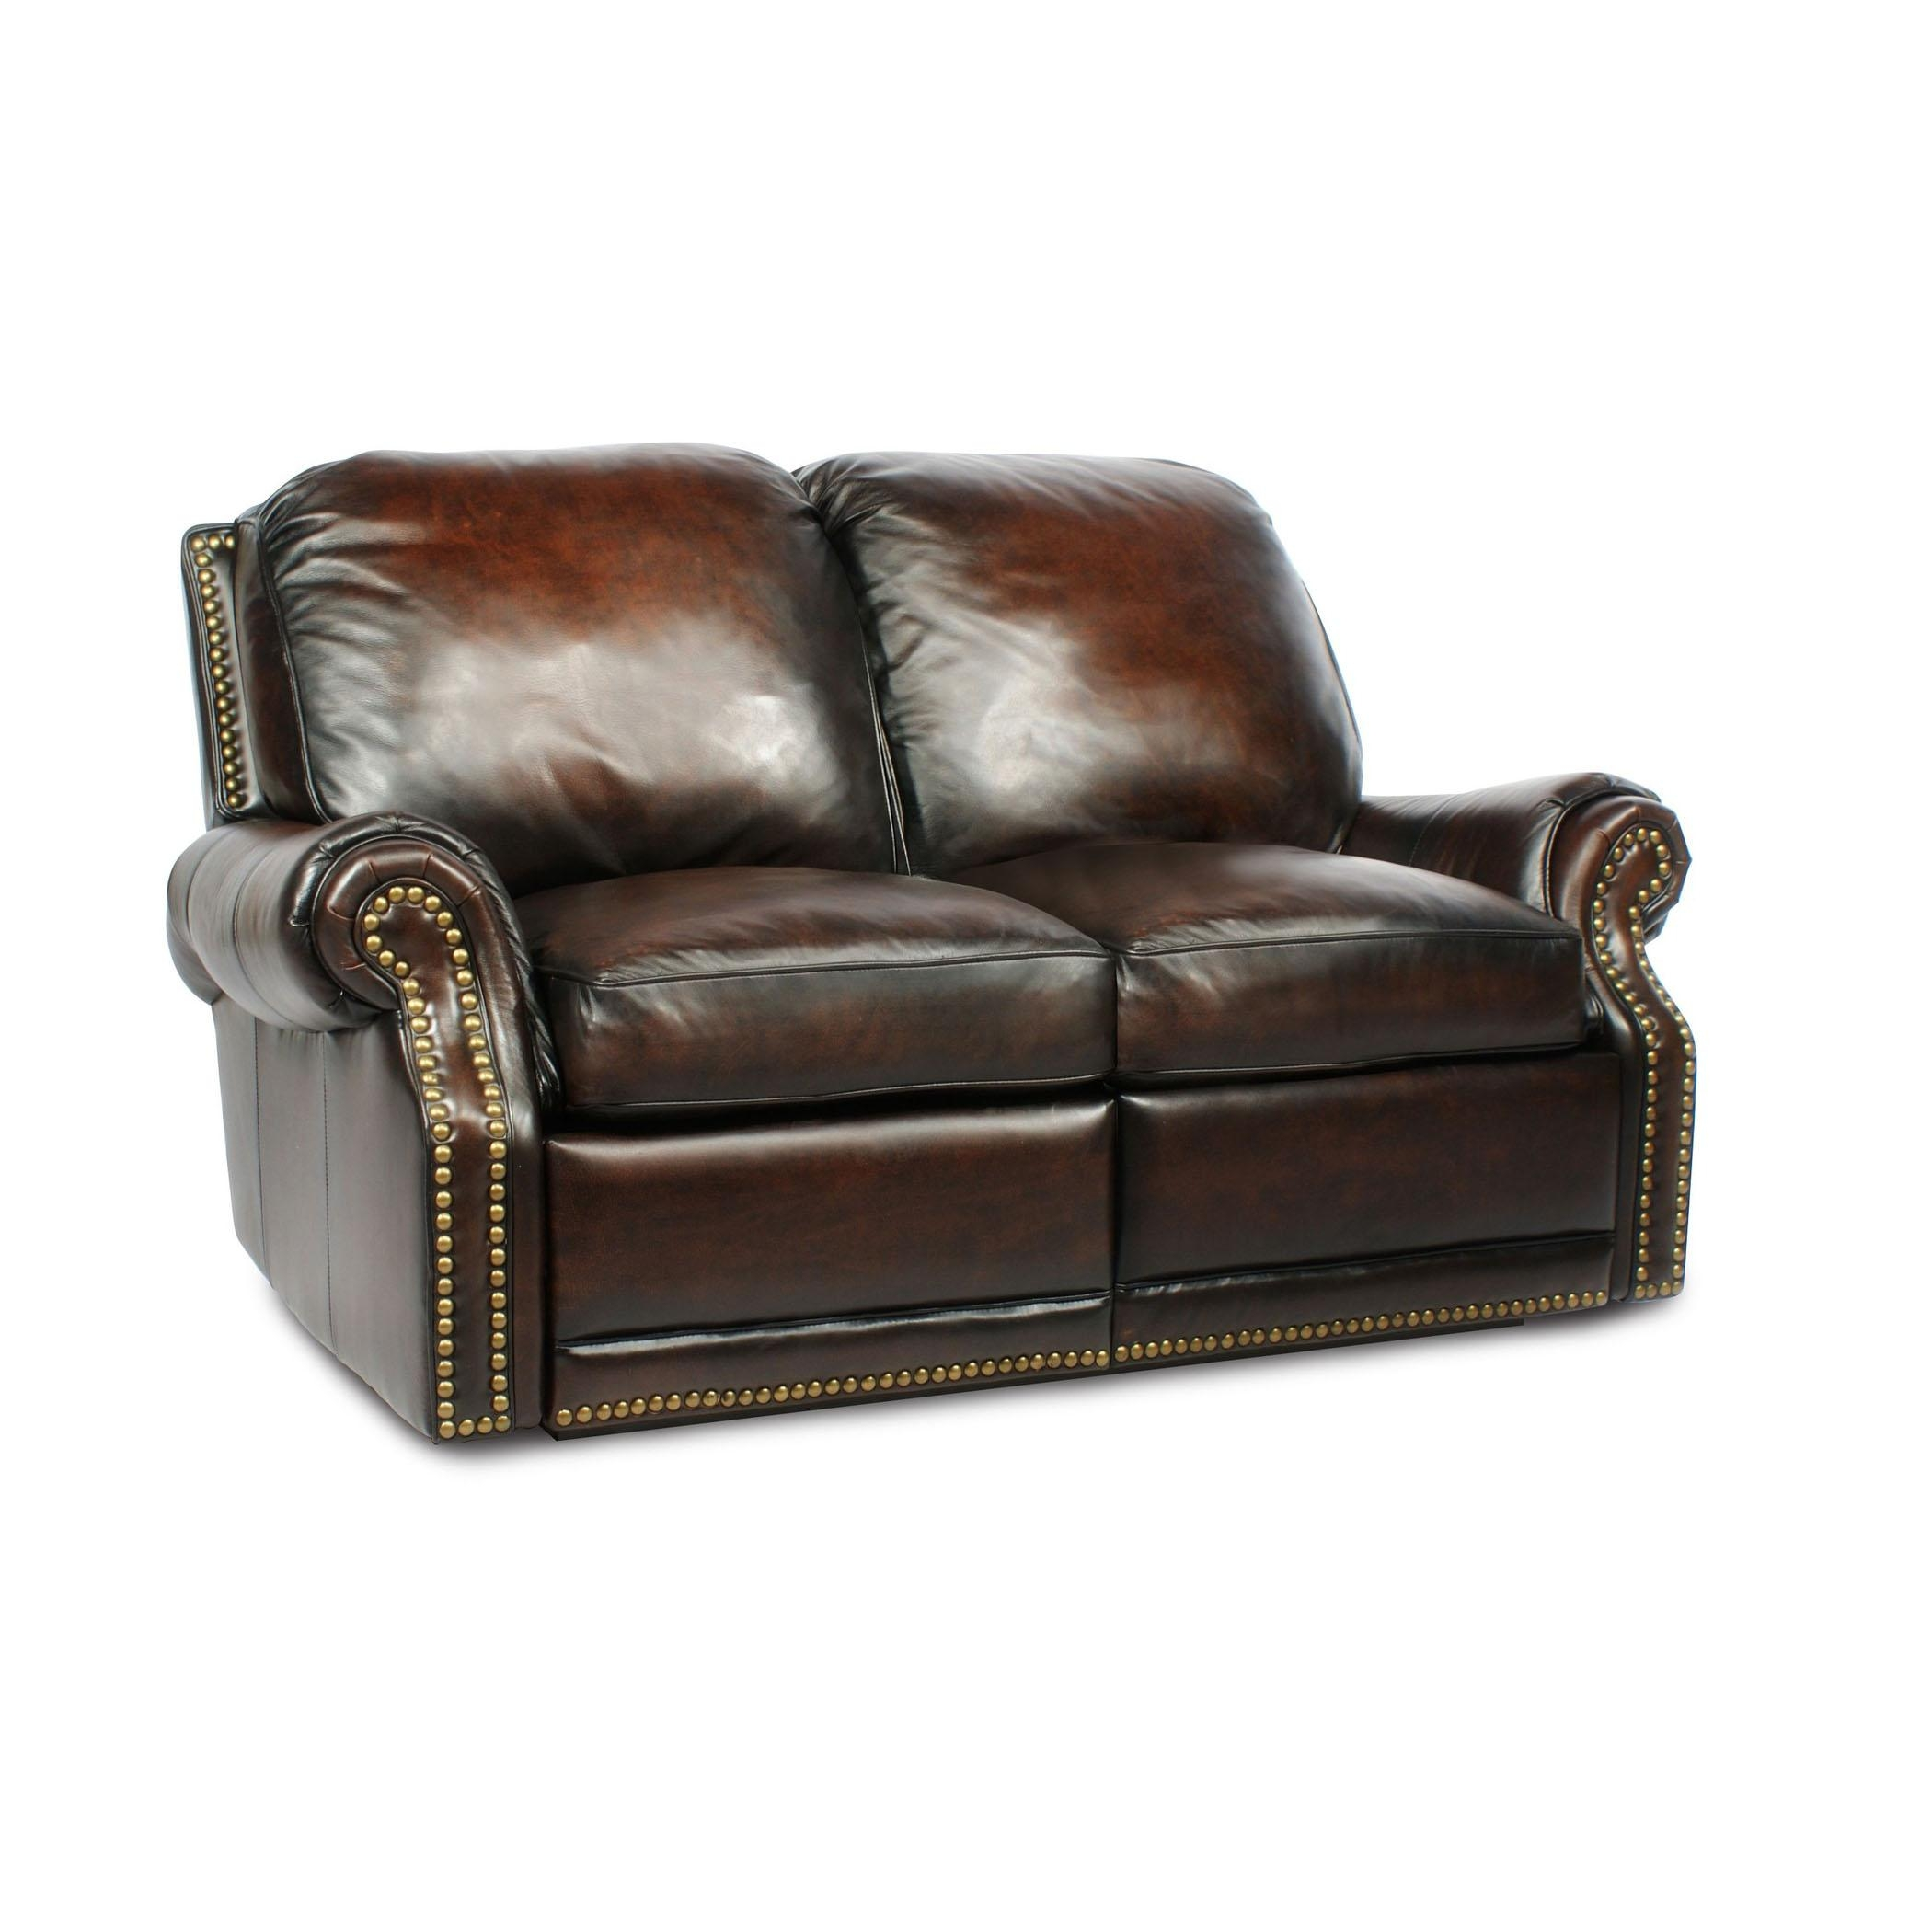 Barcalounger Premier Ii Leather 2 Seat Loveseat Sofa – Leather 2 For Barcalounger Sofas (Image 12 of 20)